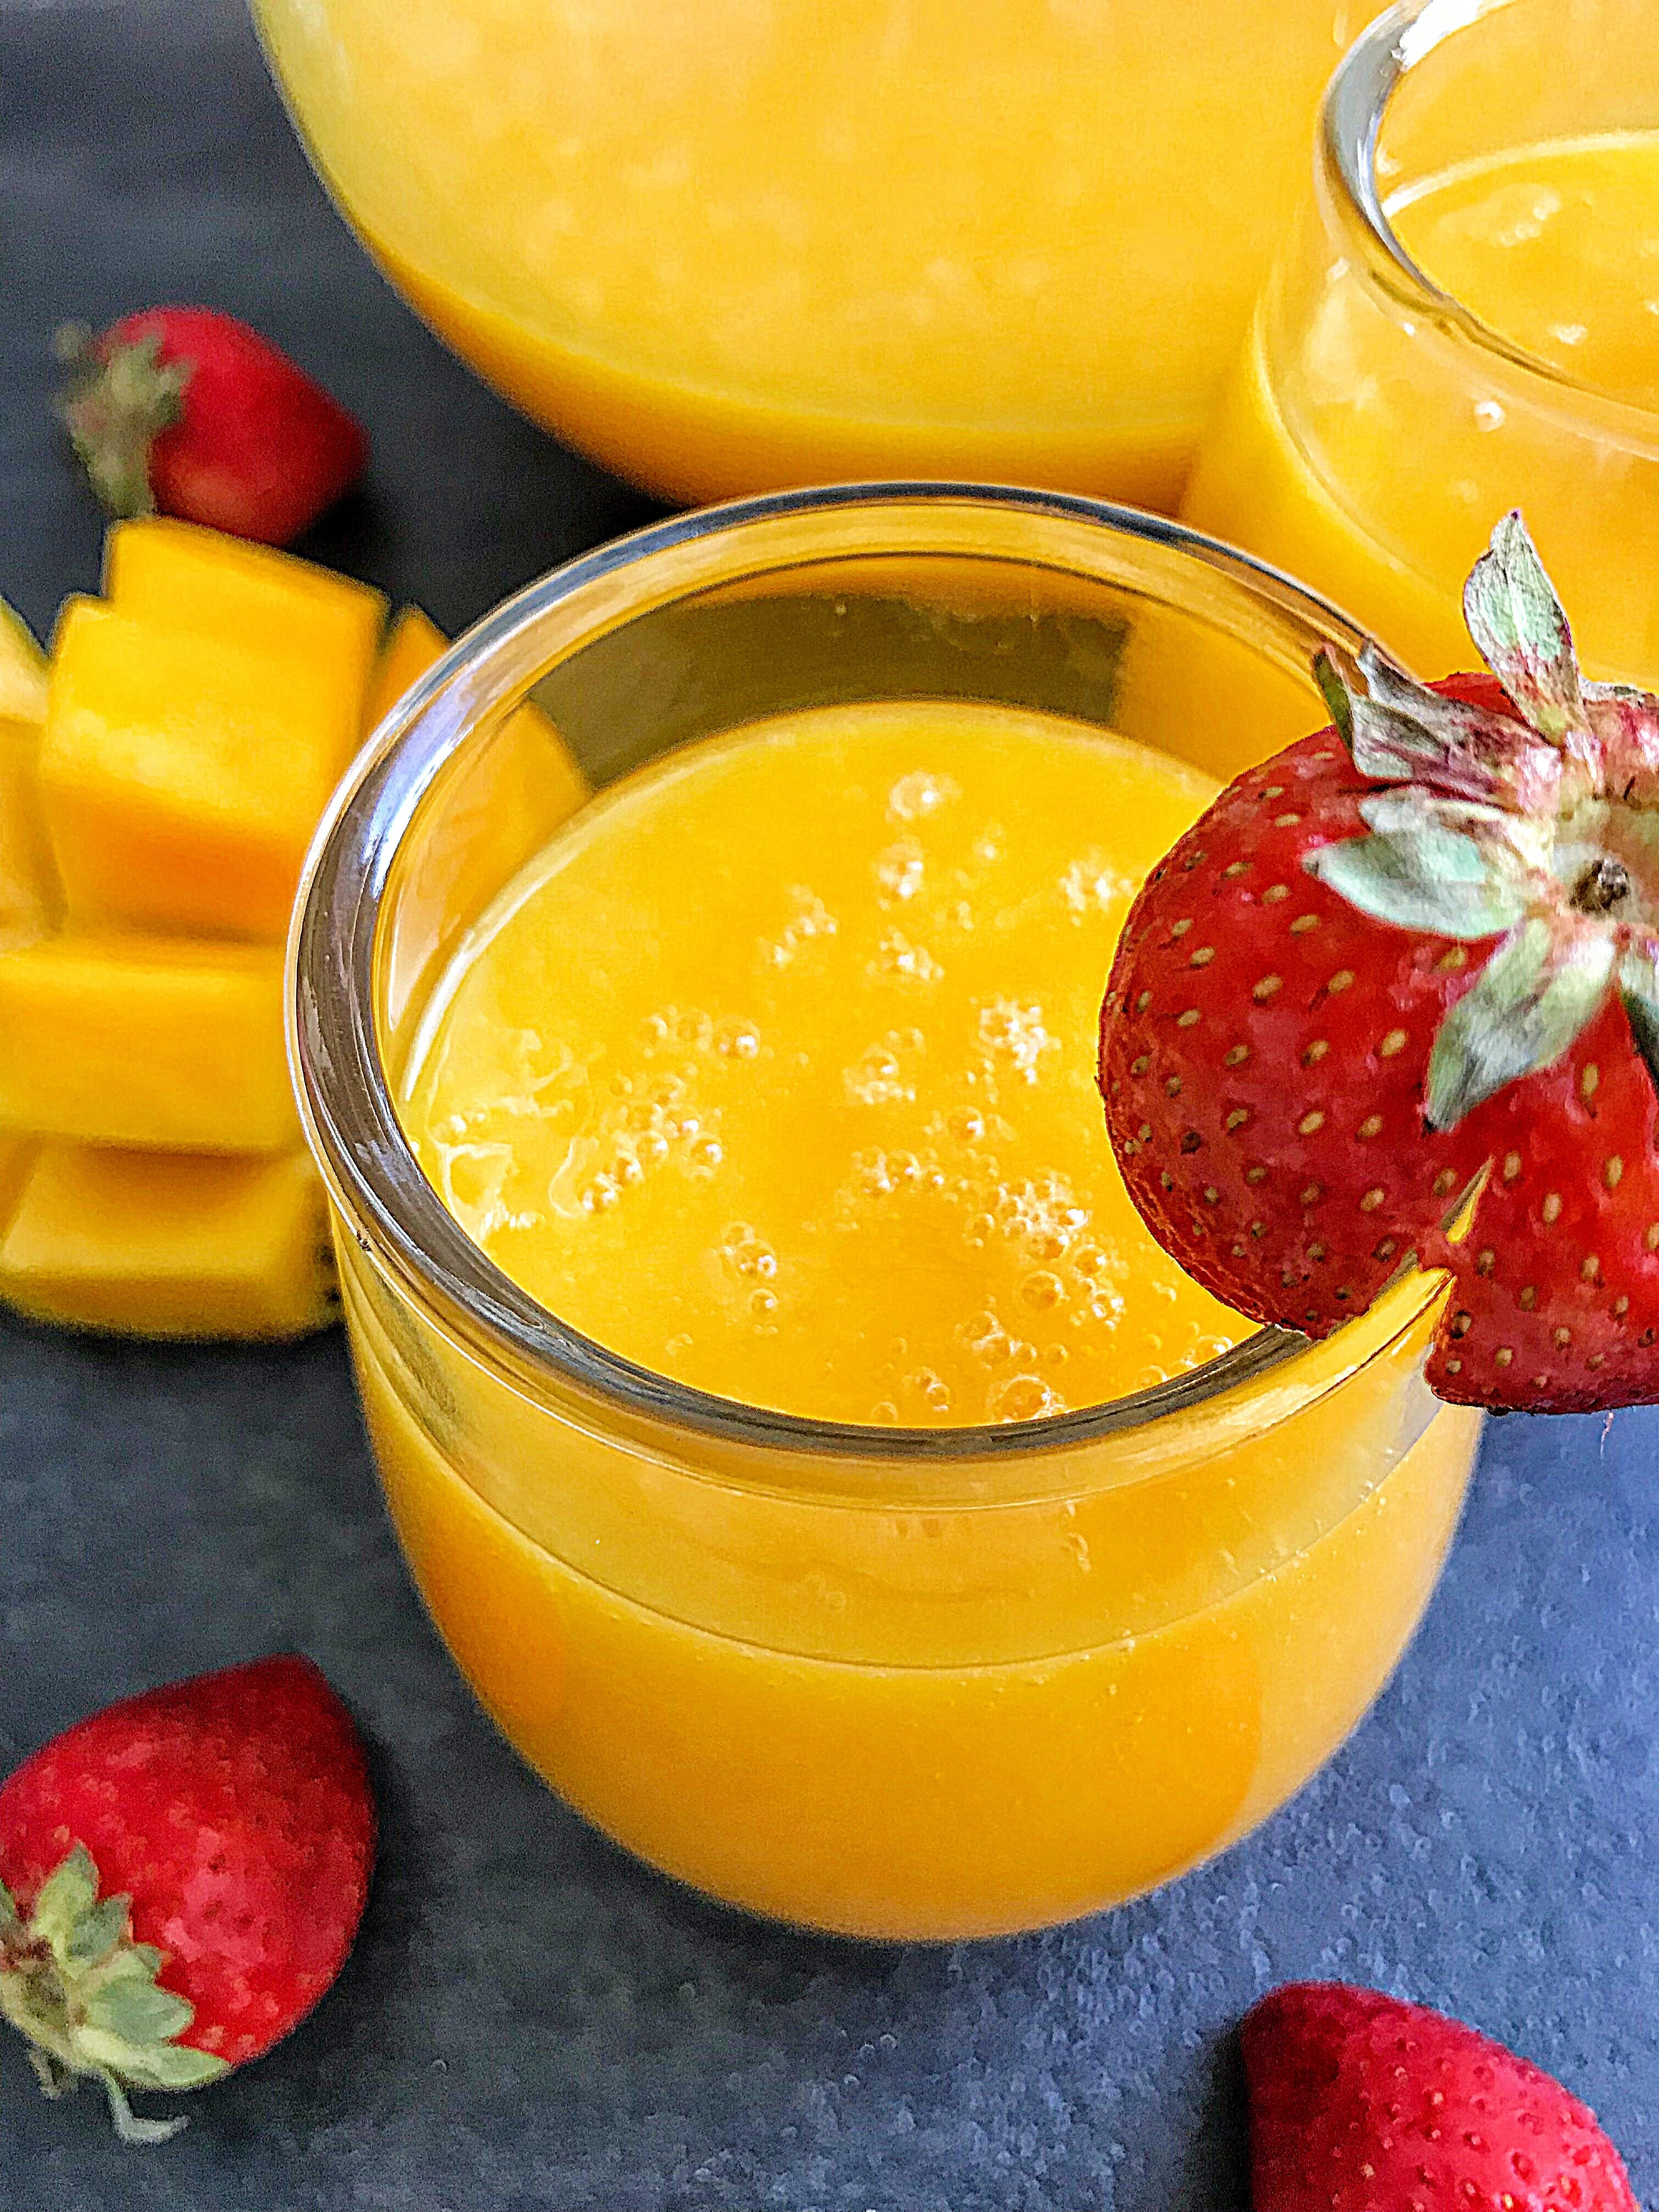 Velvety Smooth Mango Juice My Diaspora Kitchen